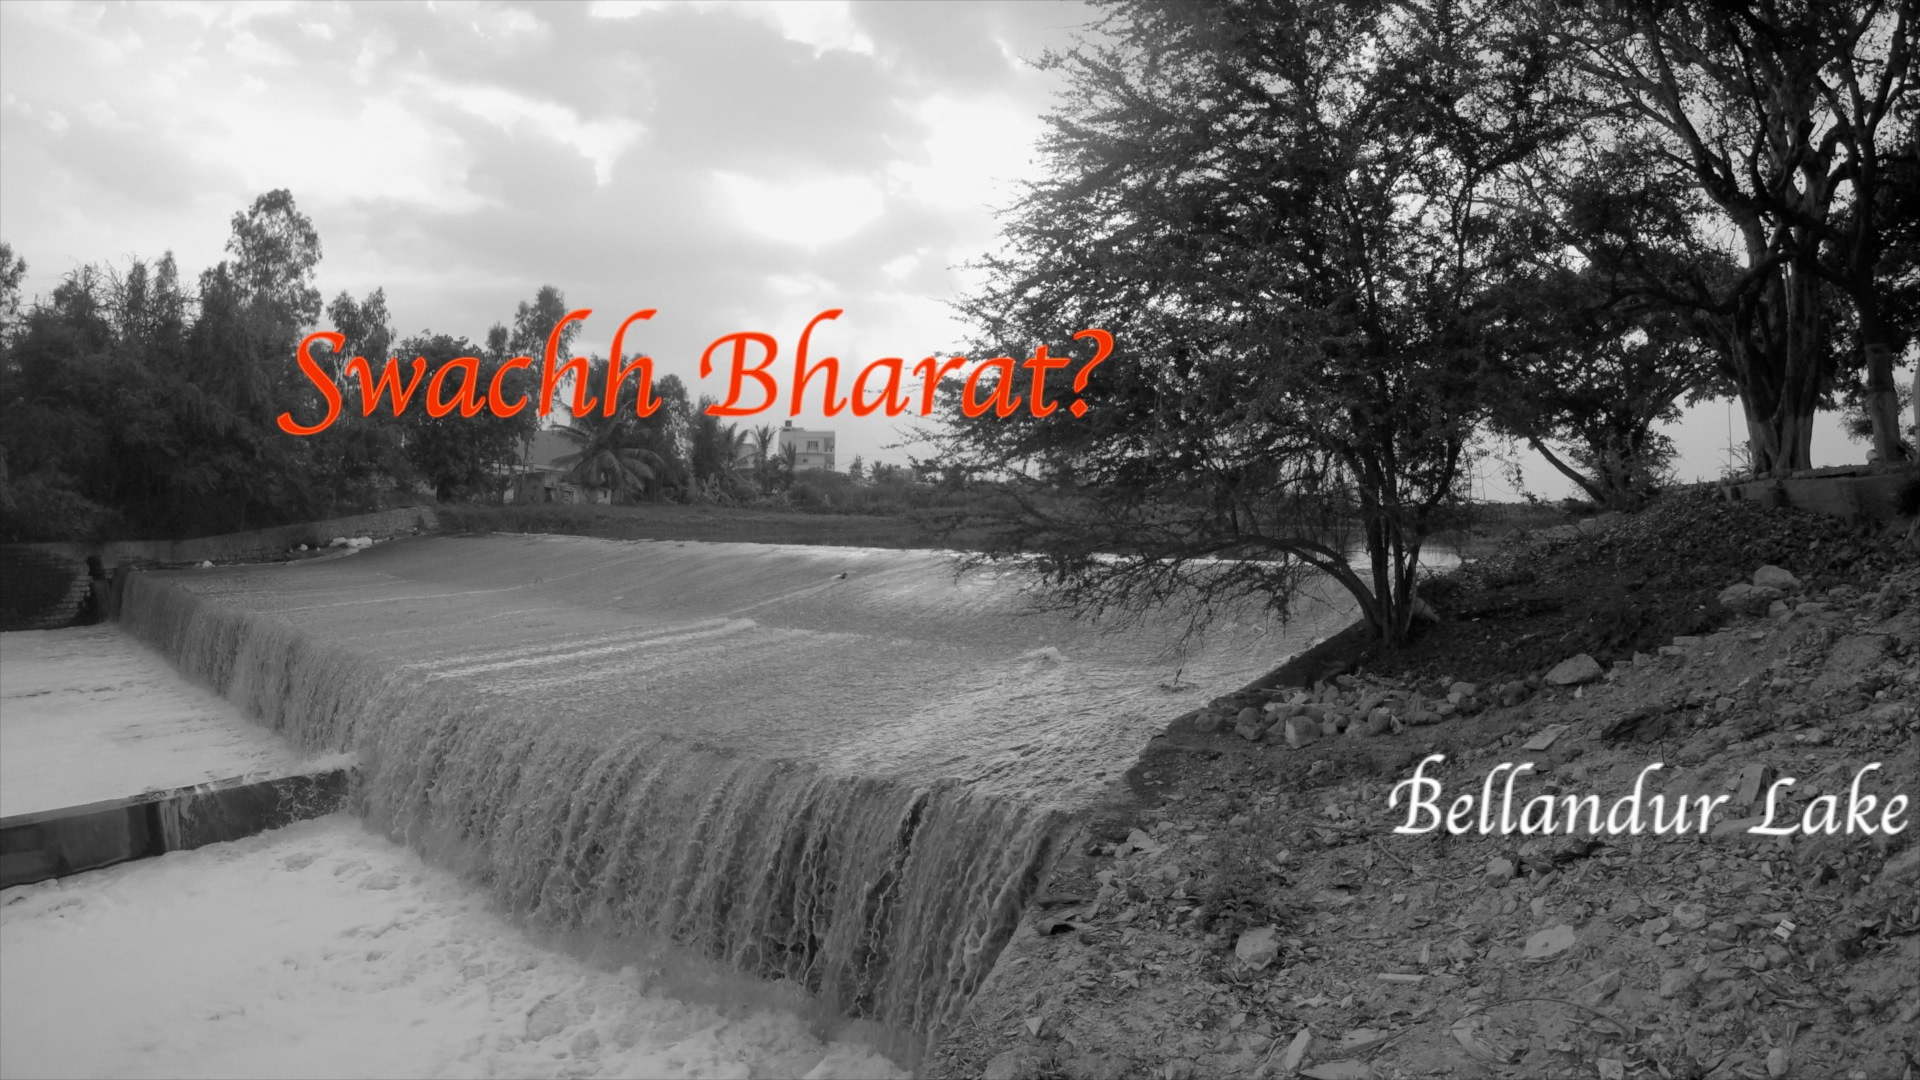 Swachh Bharat? Bellandur Lake Bangalore